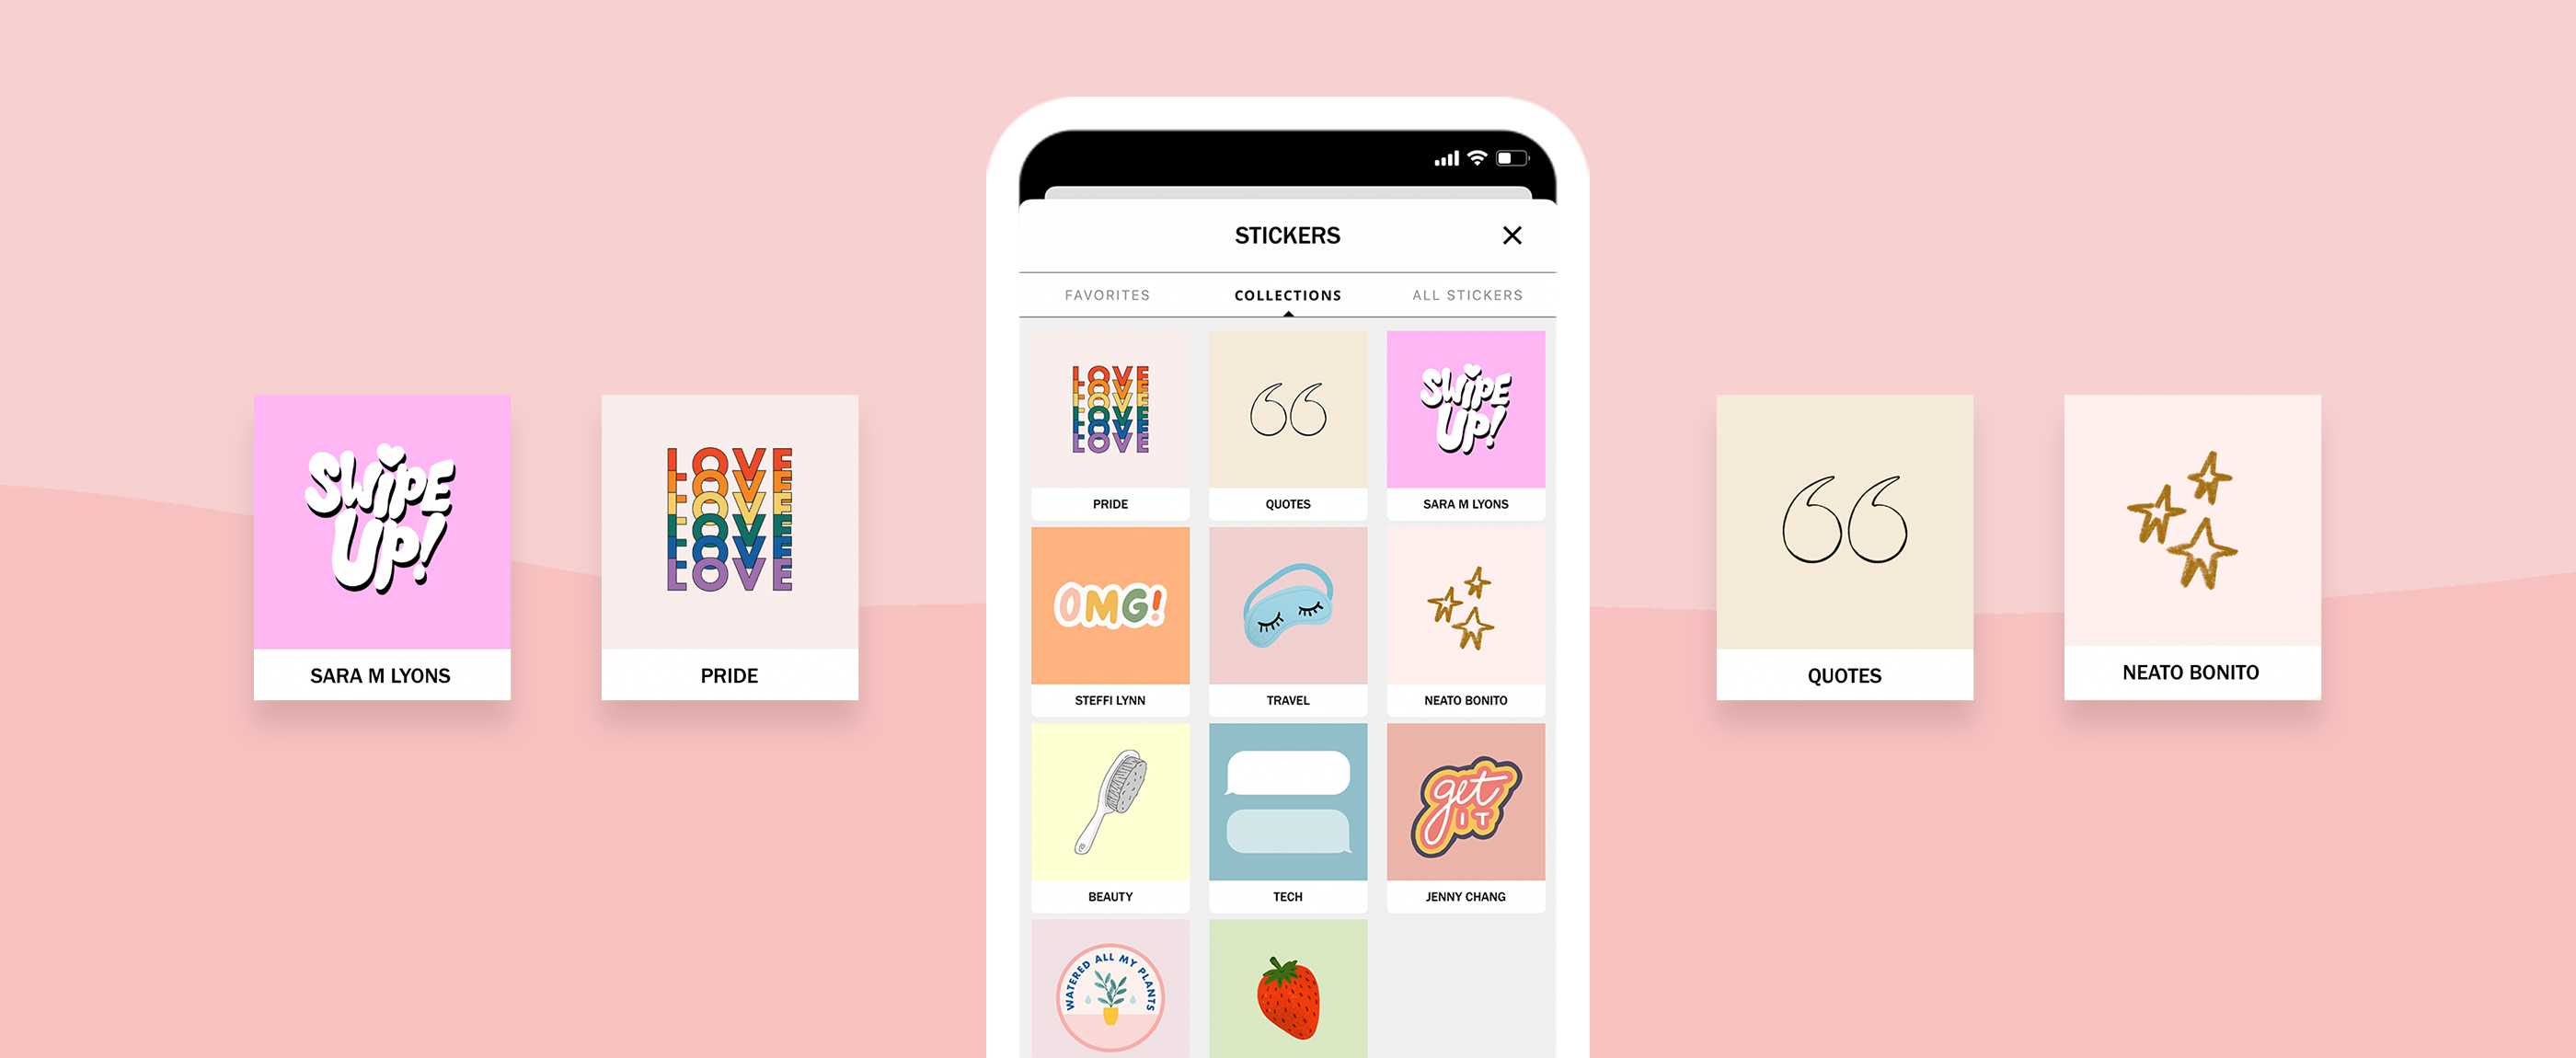 PLANOLY - Blog Post - How to Use the Resizing, Rotation, and Stickers Features on StoriesEdit - Banner-2-Stickers